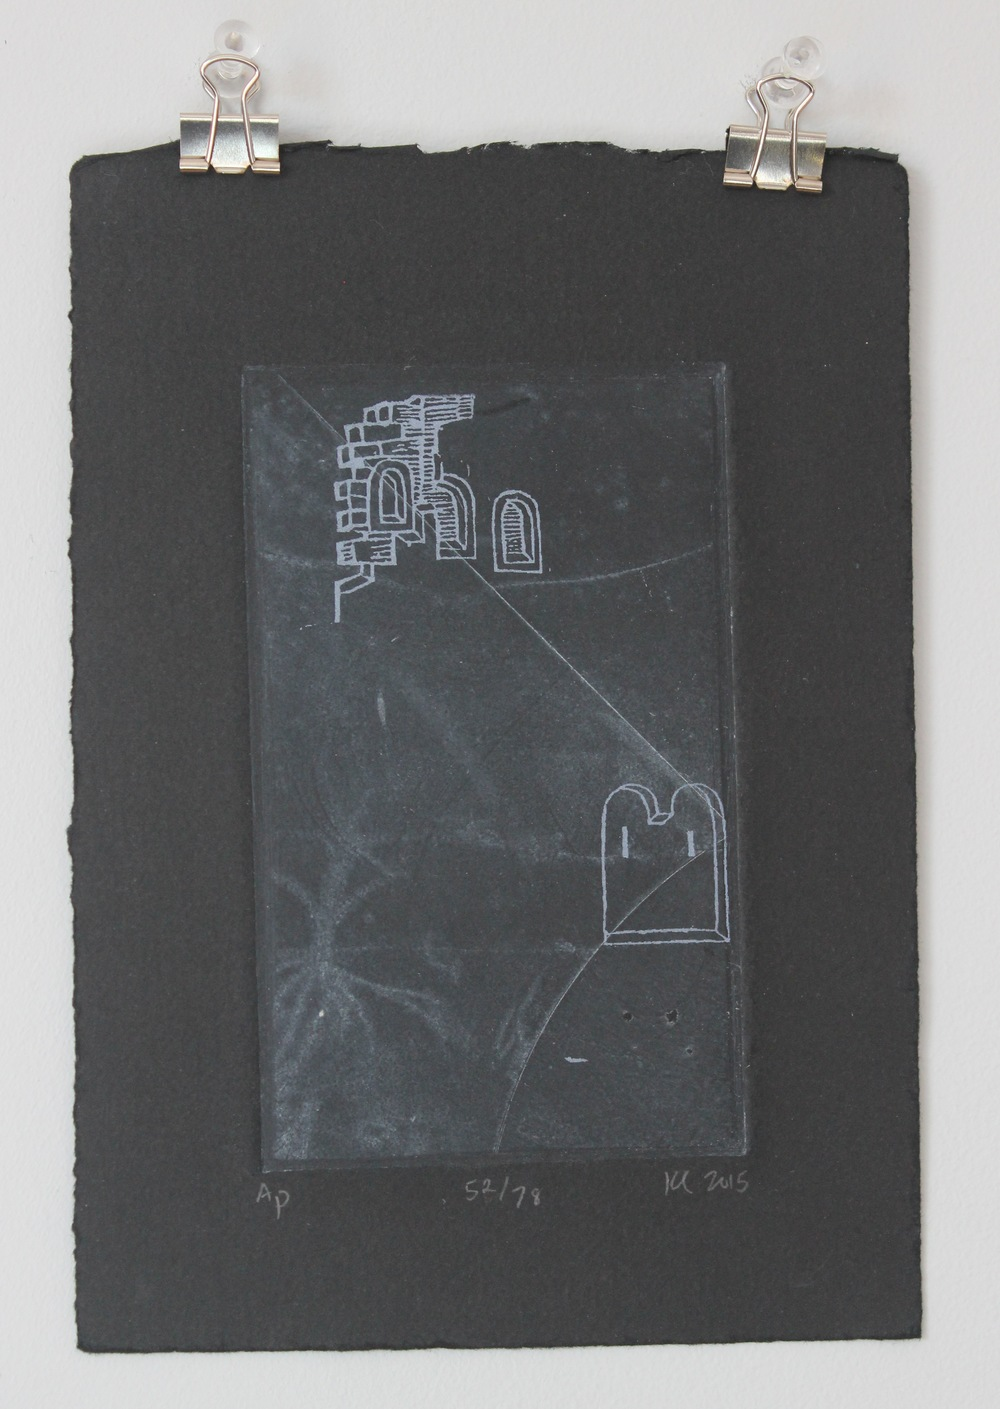 3478  Artist-Kristy Castellano   5 x 7 inches   intaglio and screen printing on paper